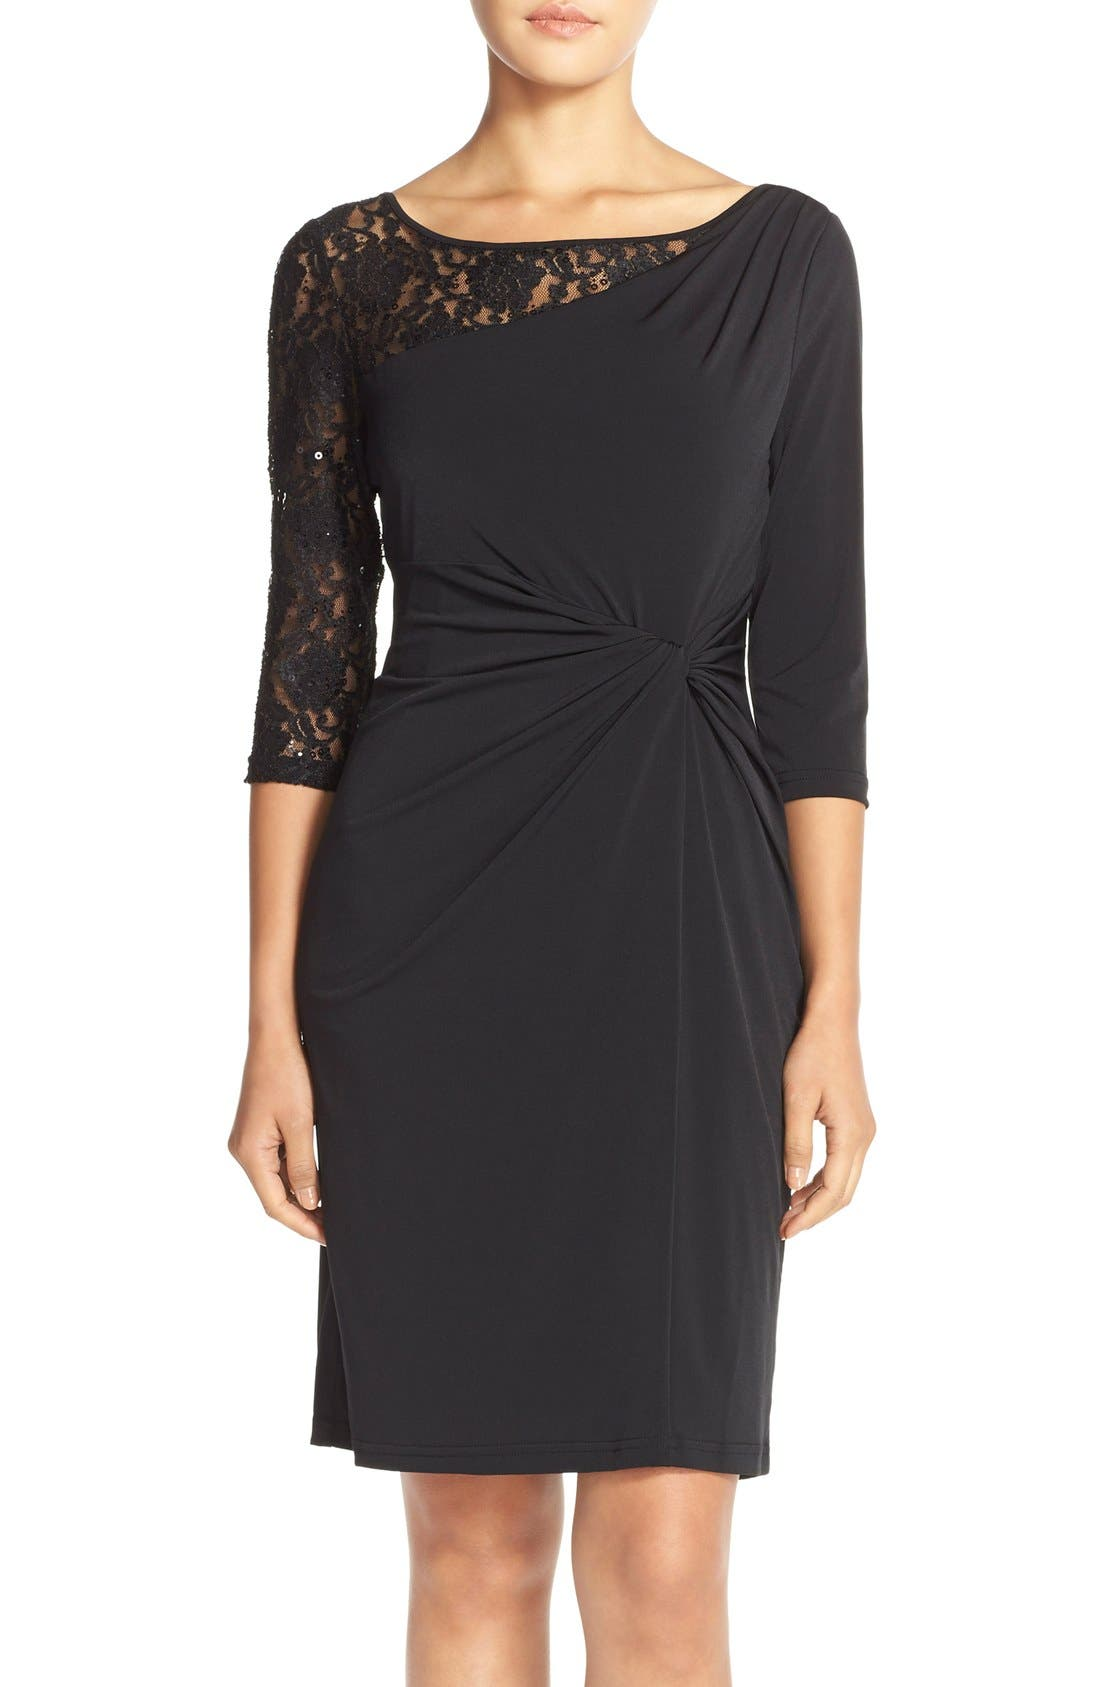 ELLEN TRACY Sequin Lace & Jersey Sheath Dress